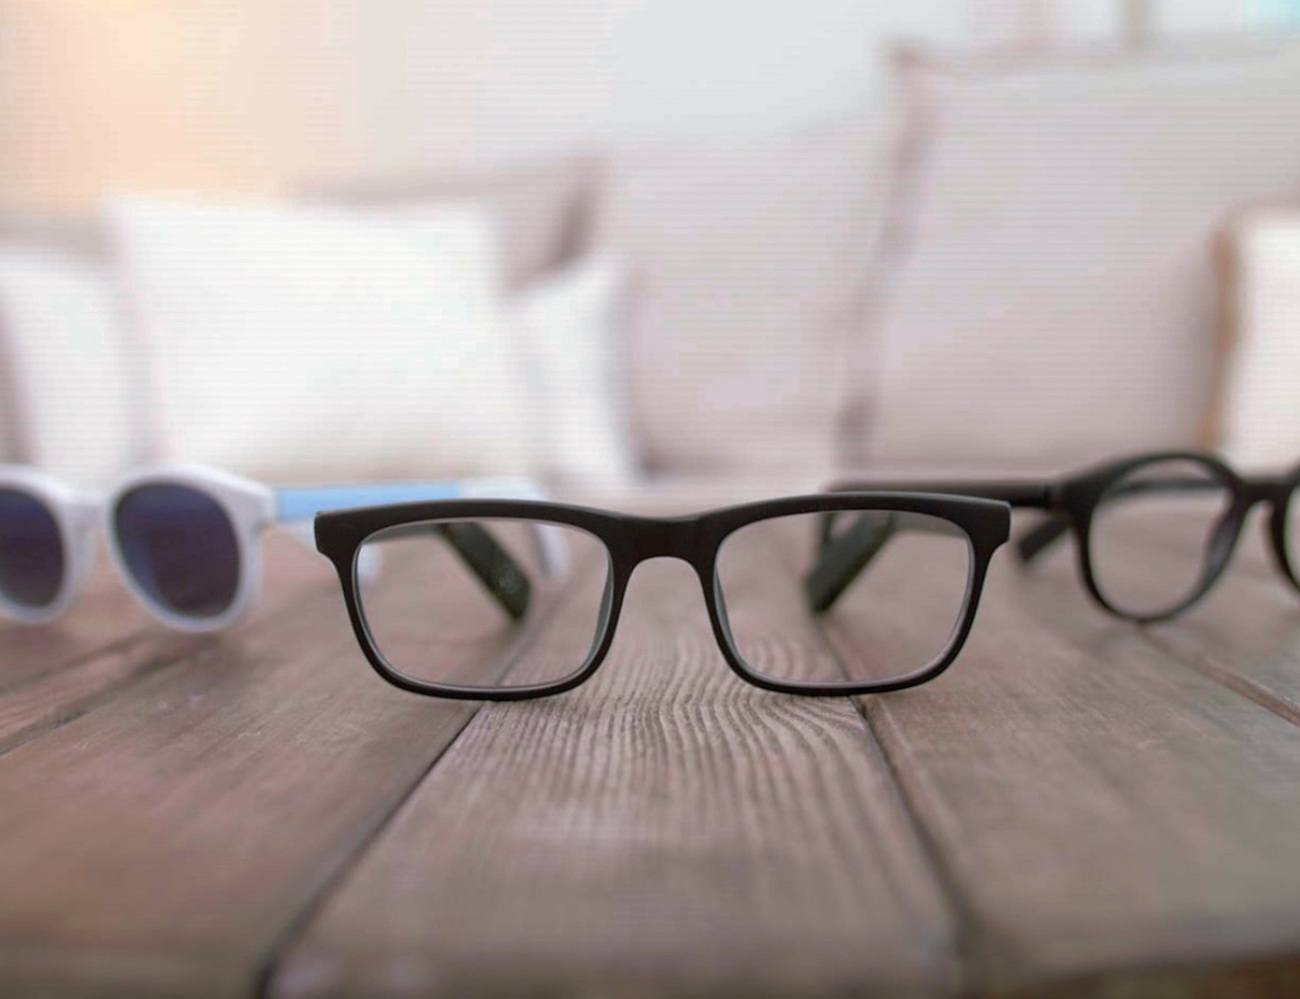 Wearable Gadget Vue  Your Everyday Smart Glasses